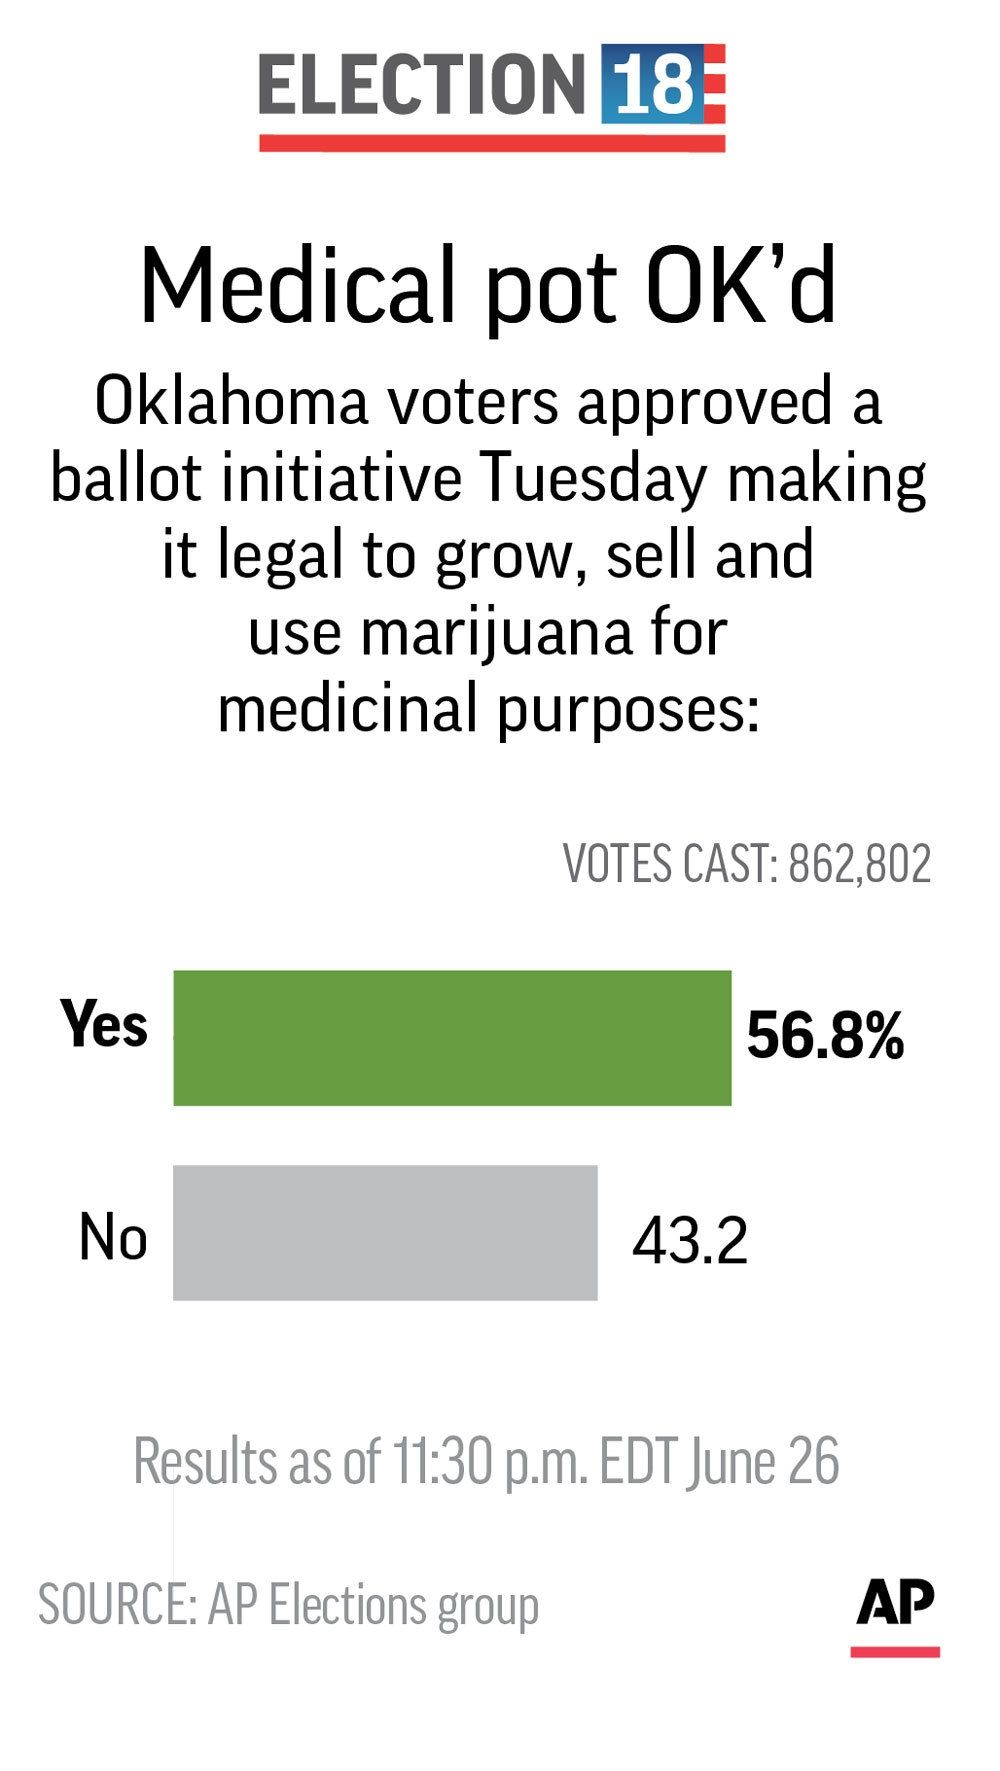 Oklahoma voters approve medical marijuana despite opposition